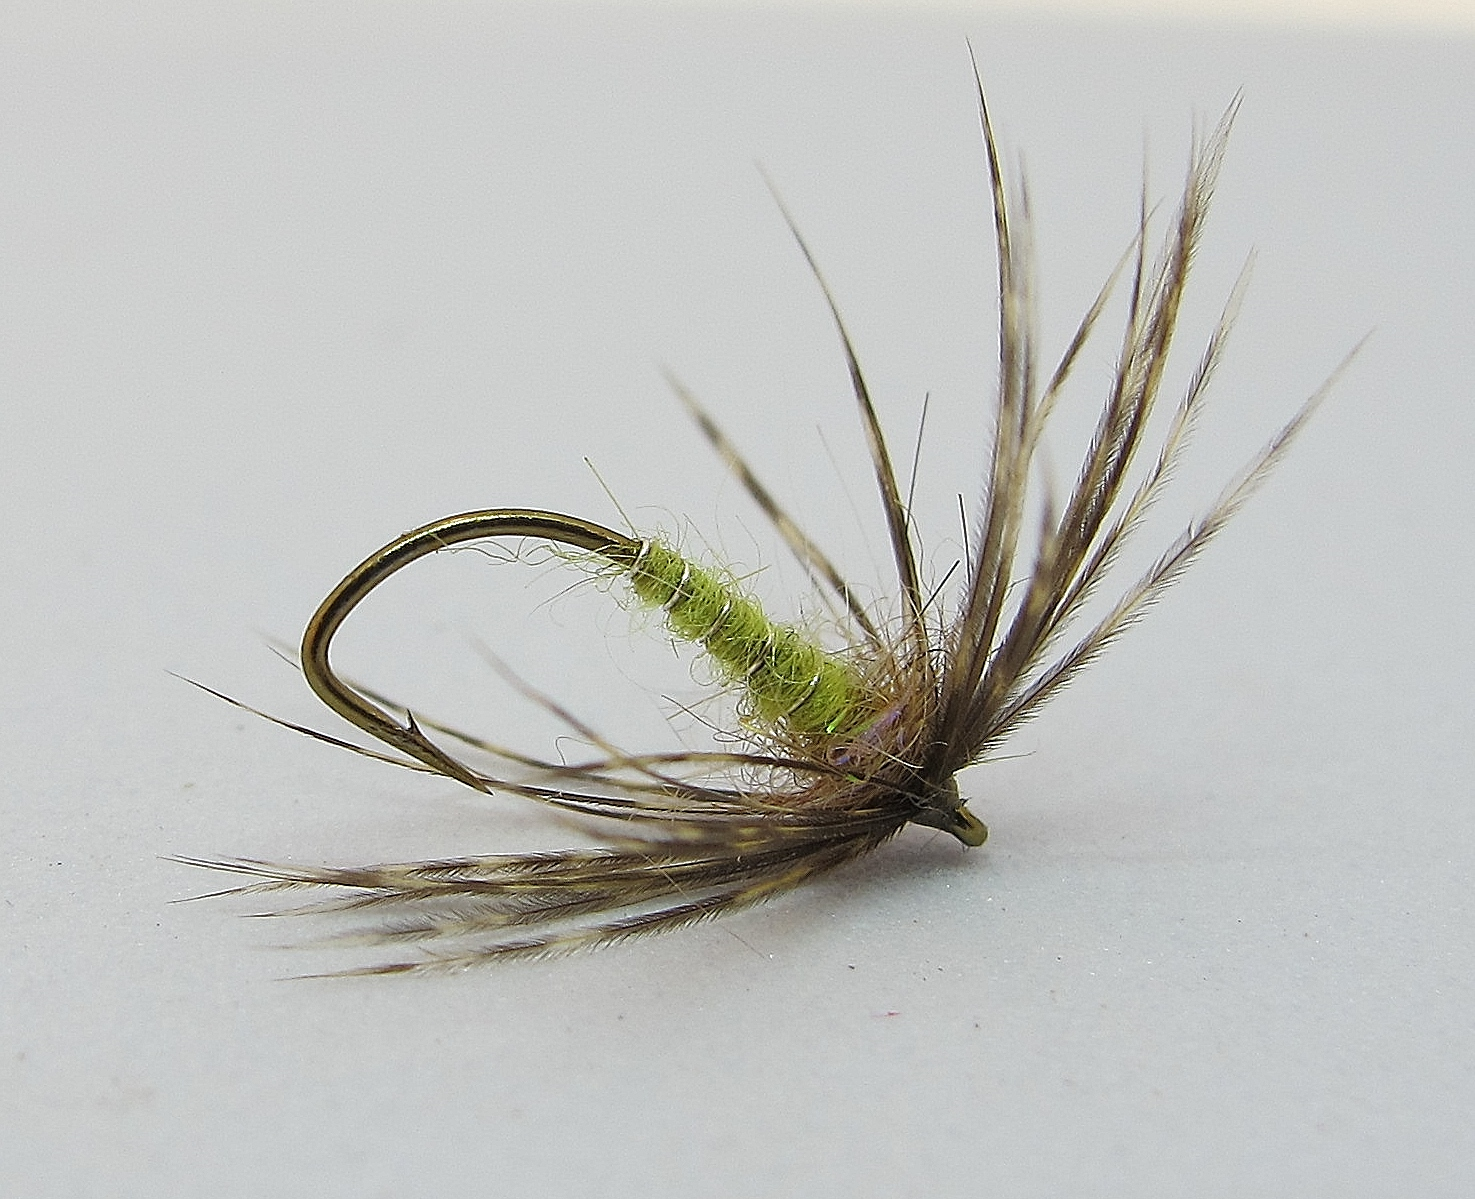 Hatches: Spotted Sedge